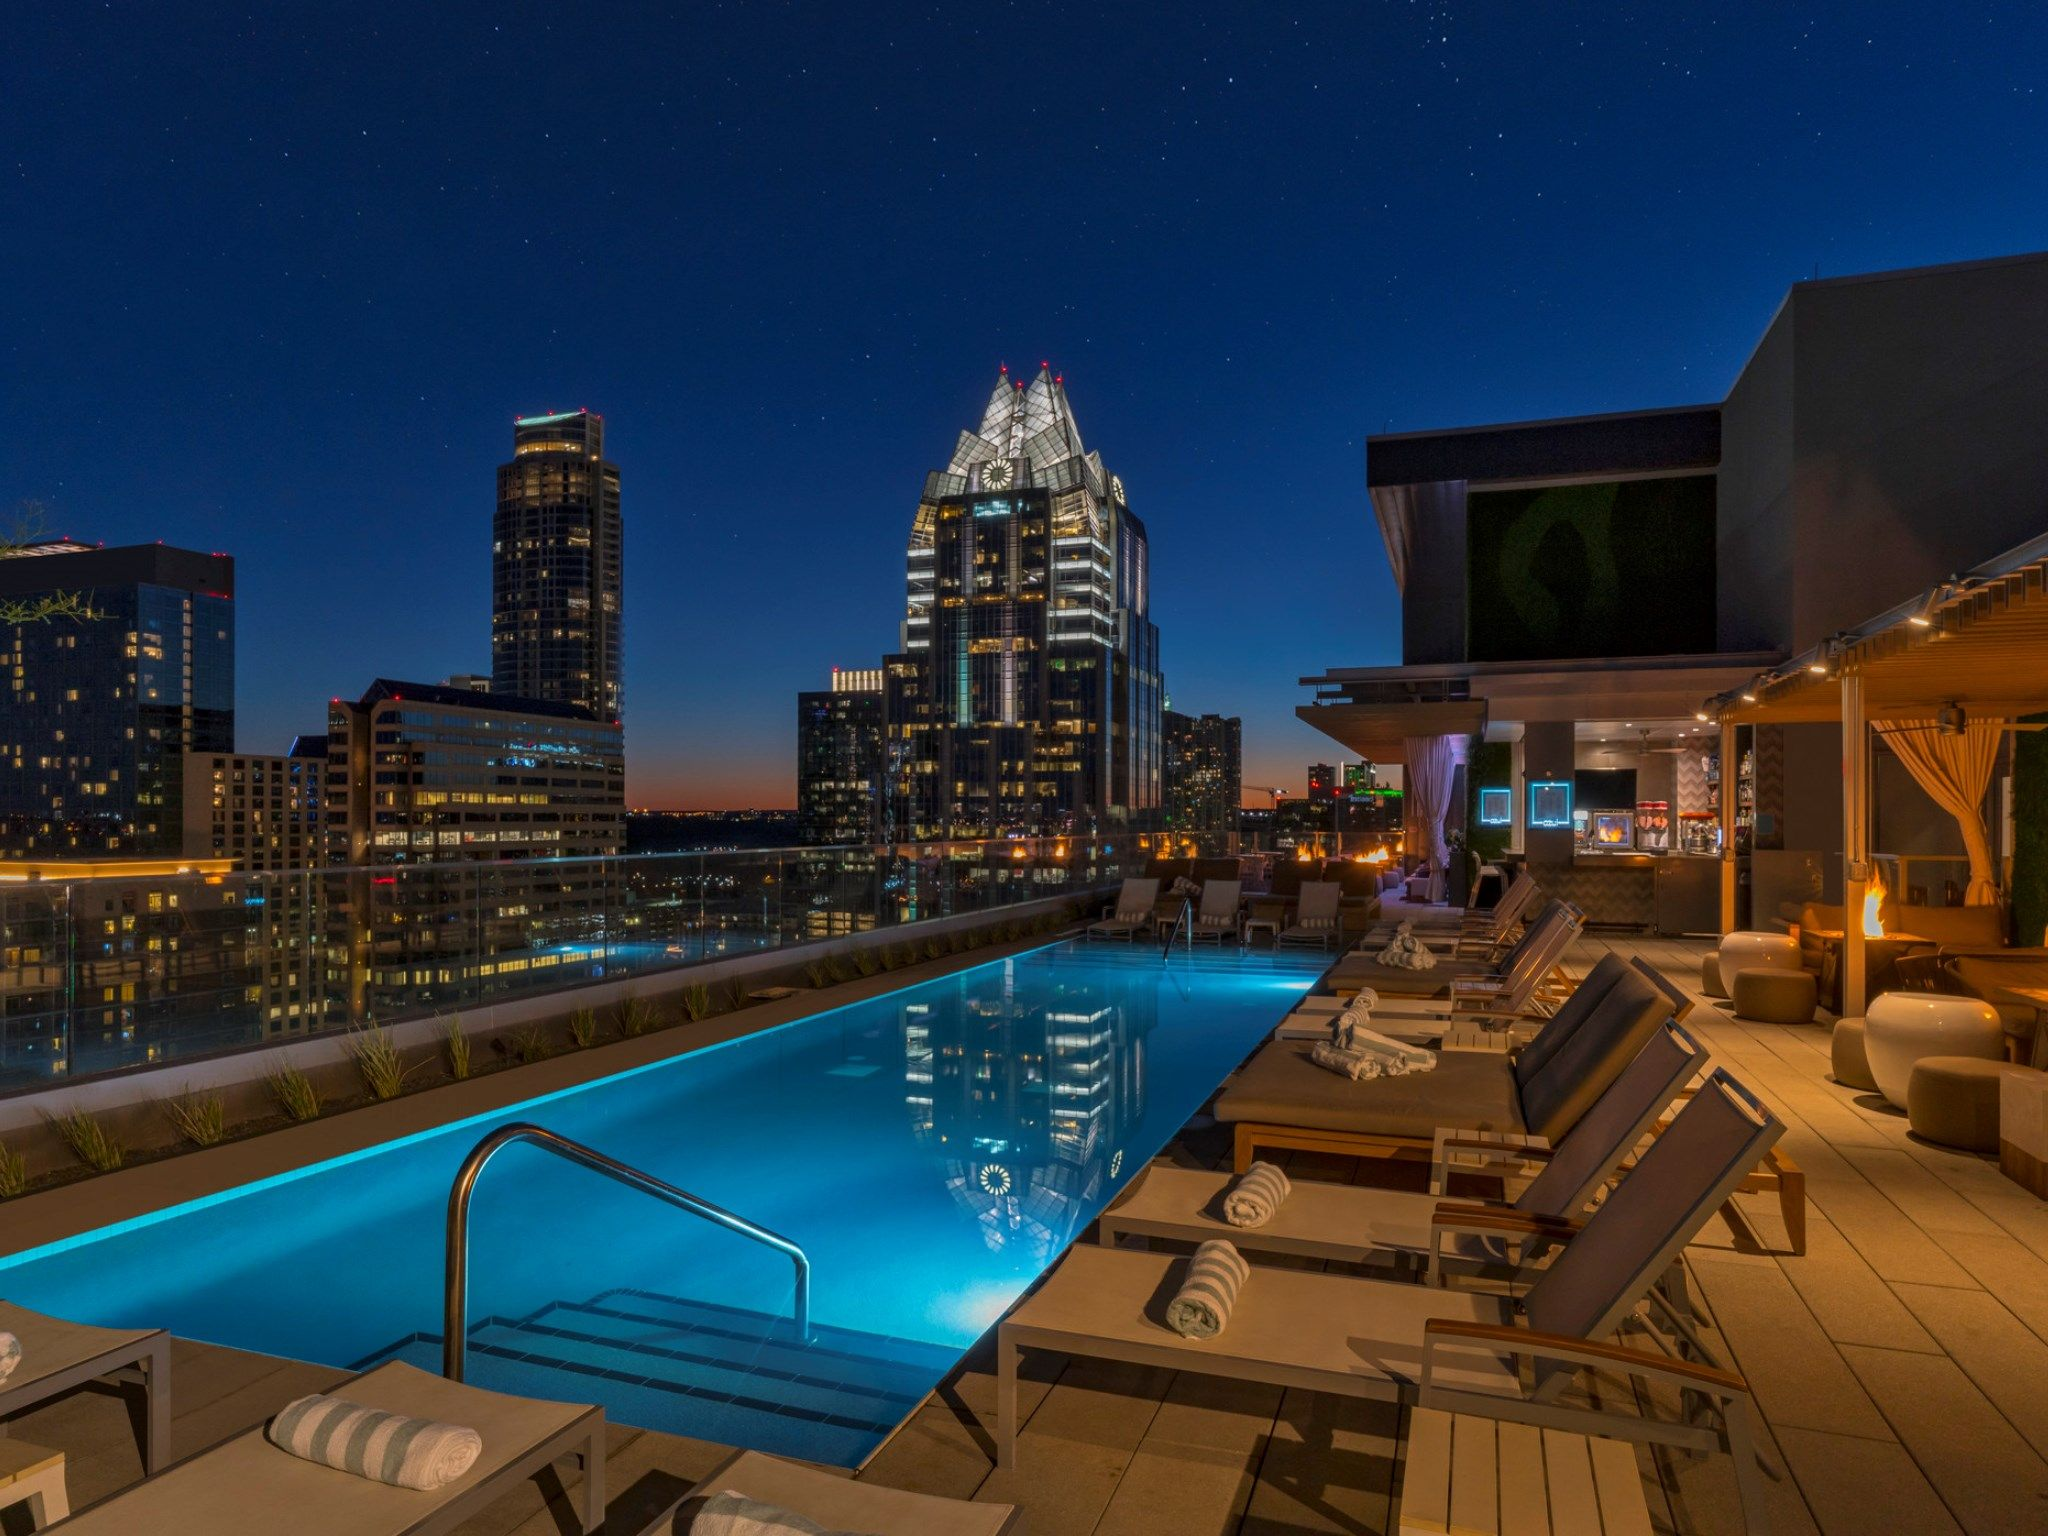 2 Bedroom Suites In Austin Tx Near 6th Street Bedroom And Bed Reviews